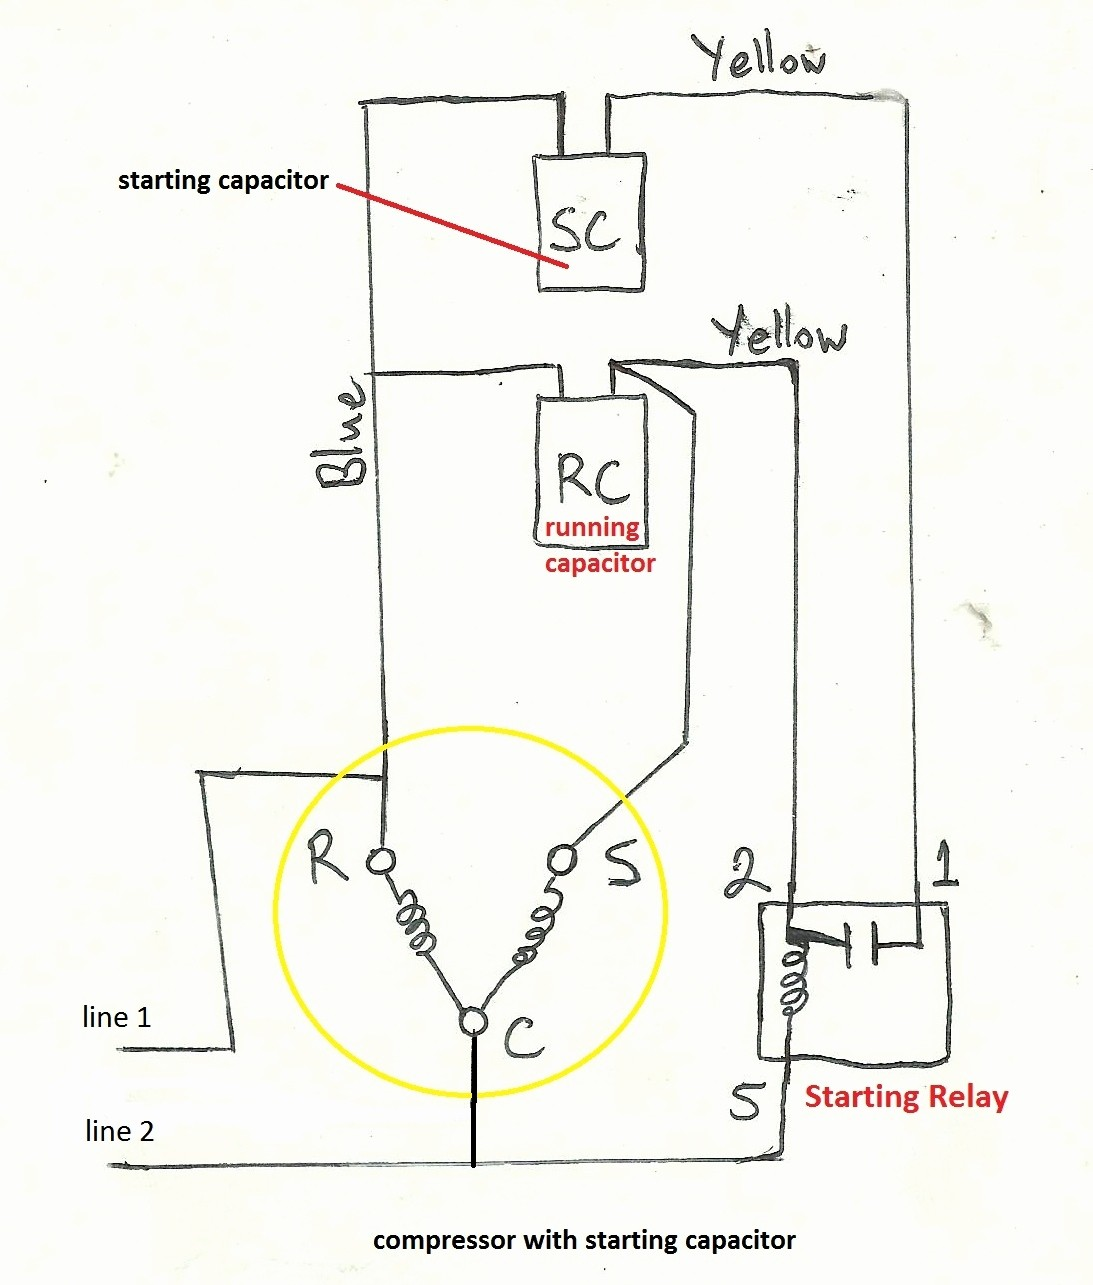 Haier Appliance Wiring Diagram - wiring diagrams for ... on